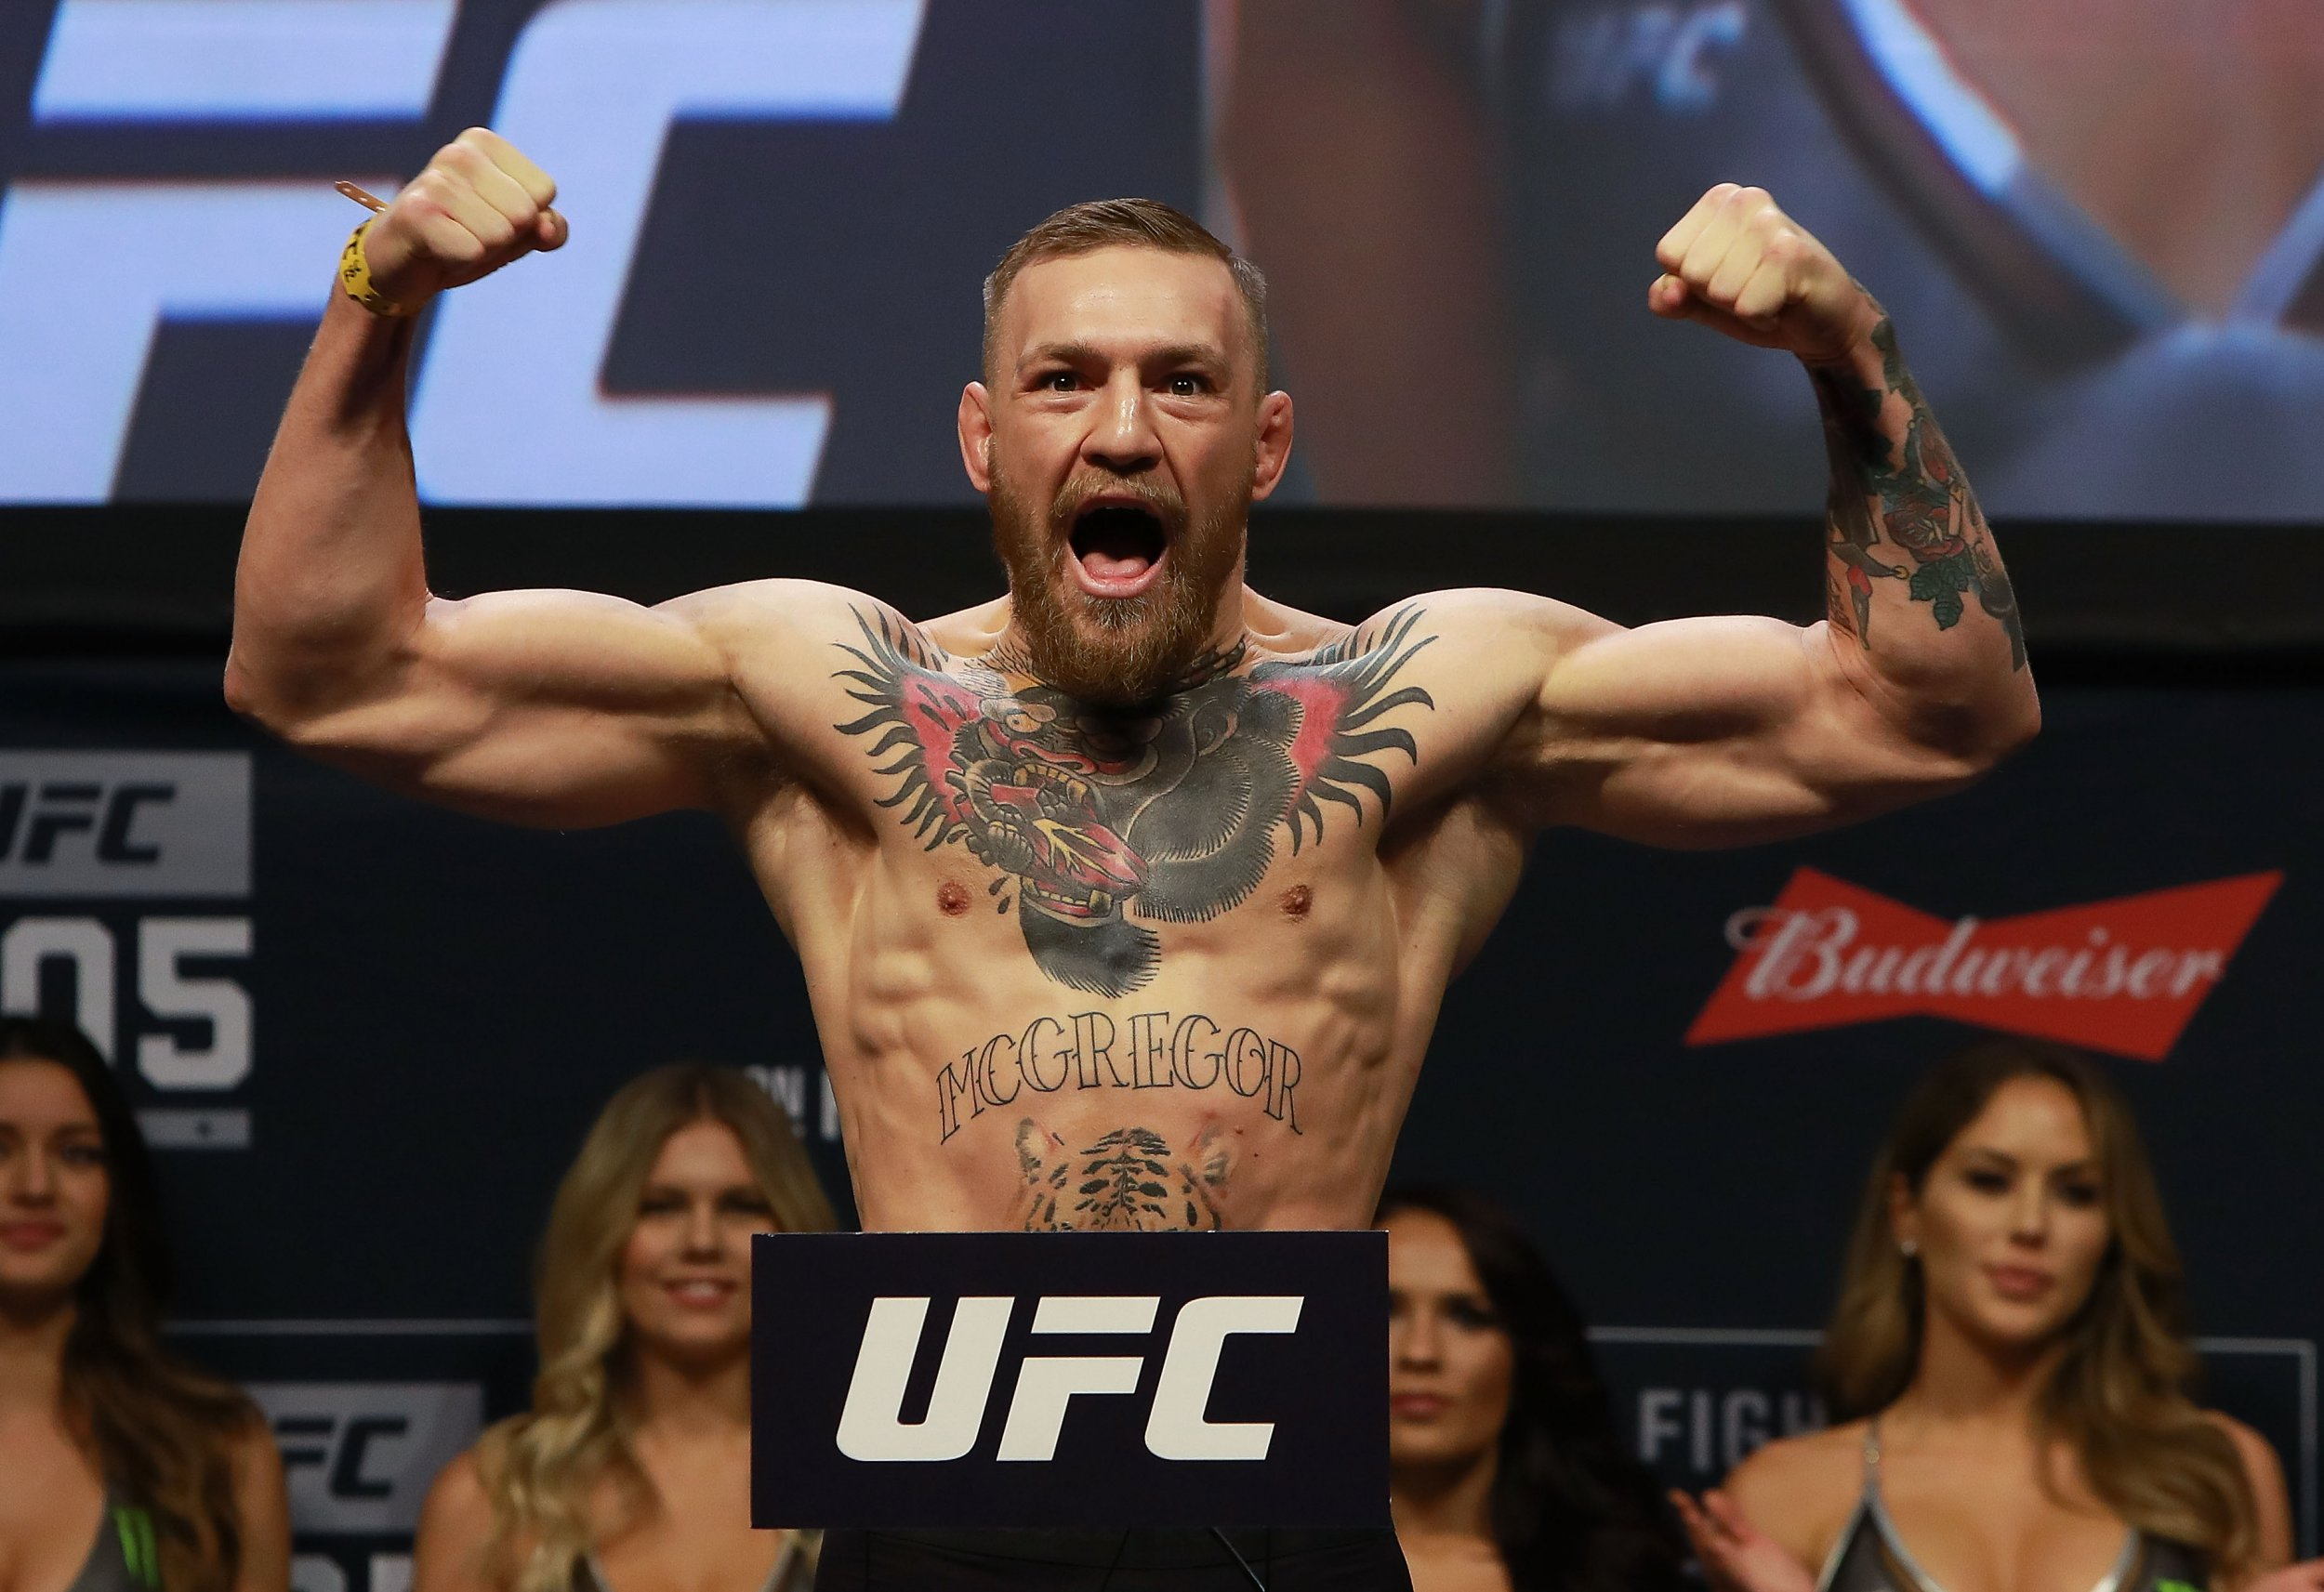 UFC lightweight champion Conor McGregor.